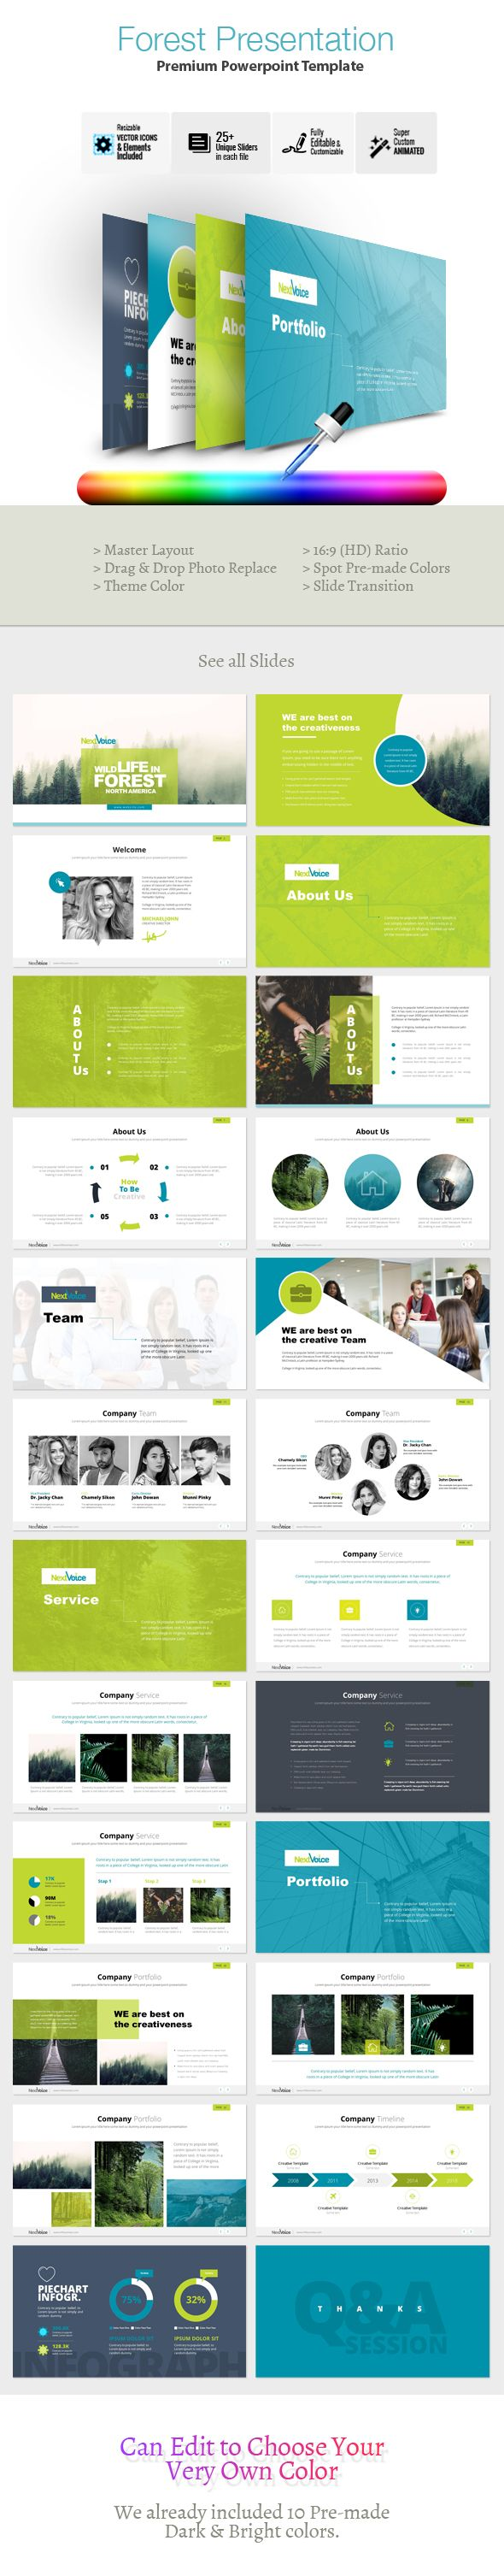 business infographic forest powerpoint presentation template